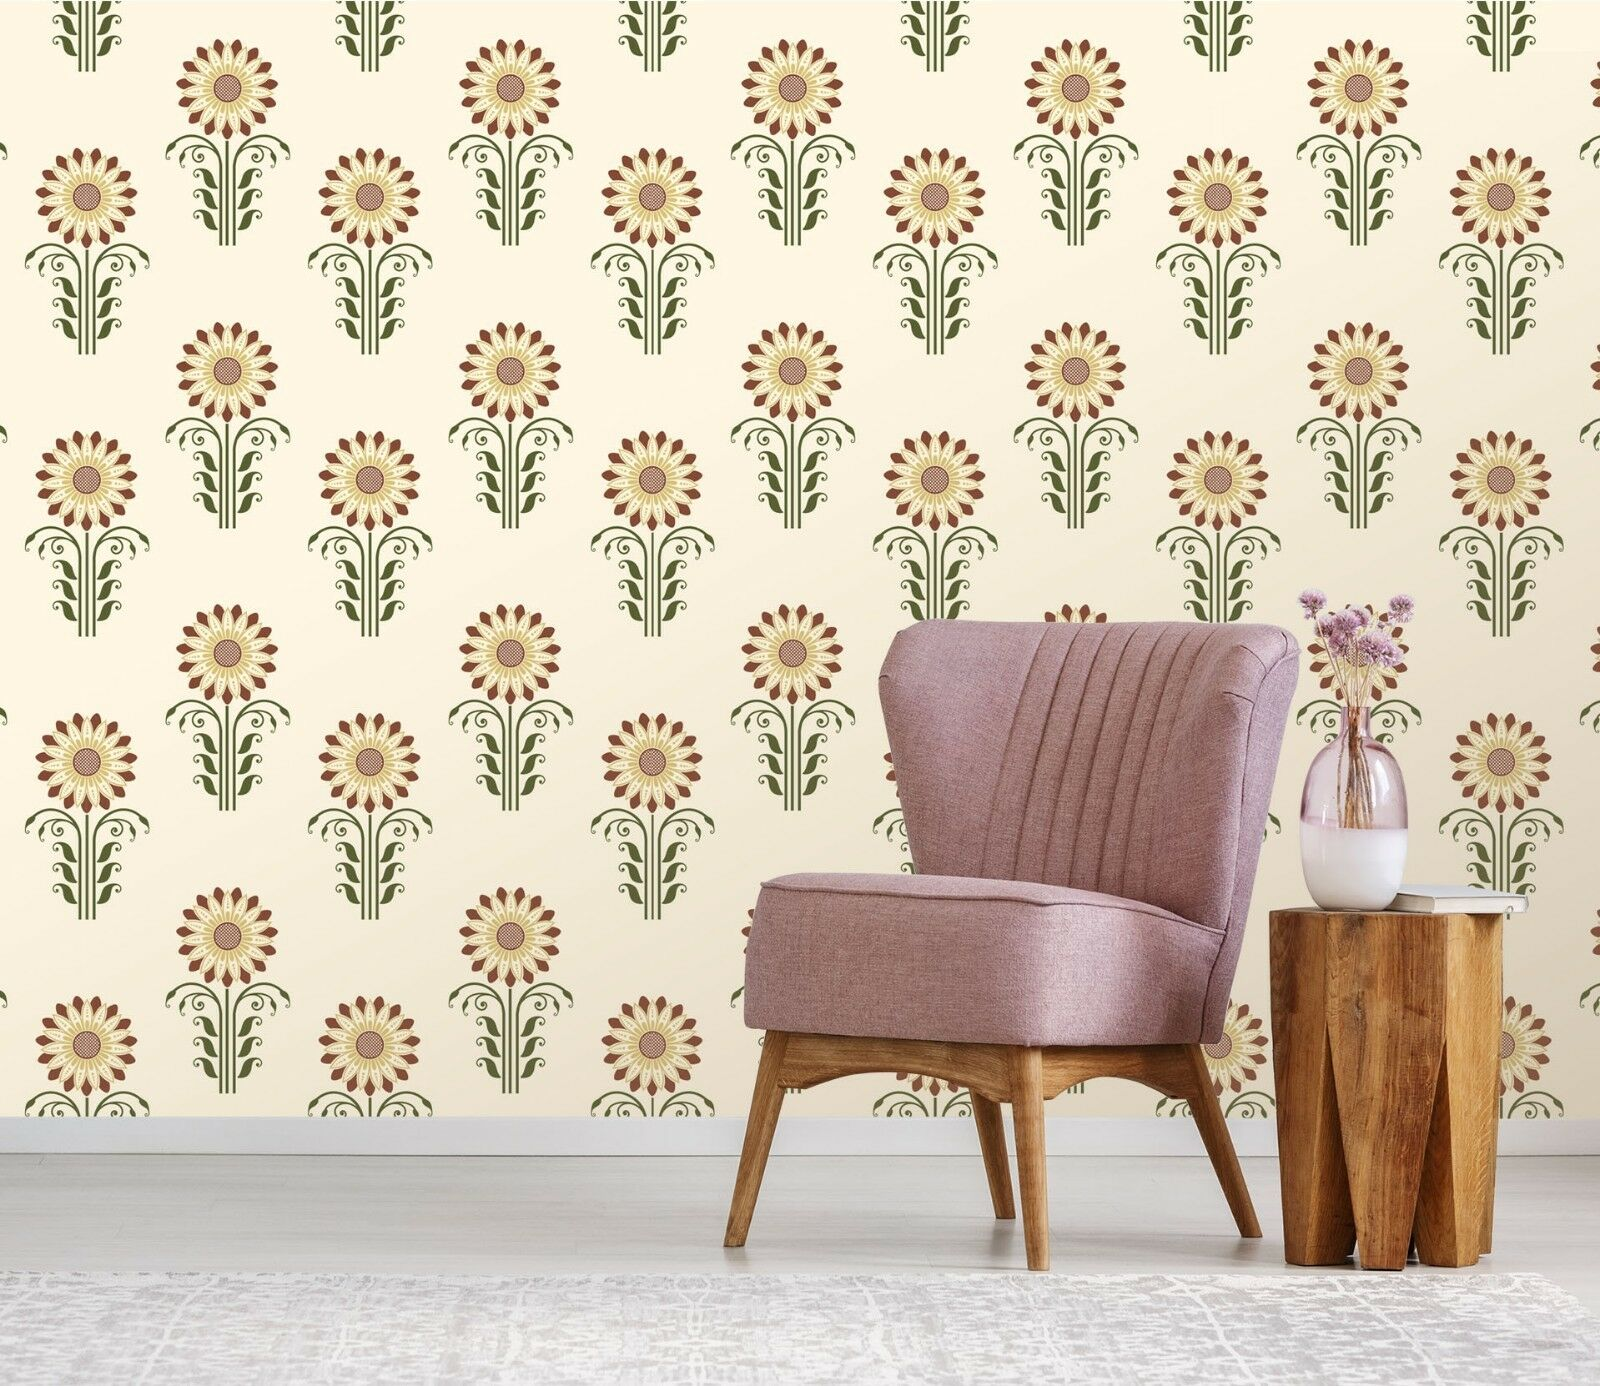 3D Sunflower 21 Wallpaper Mural Print Wall Indoor Wallpaper Murals UK Lemon